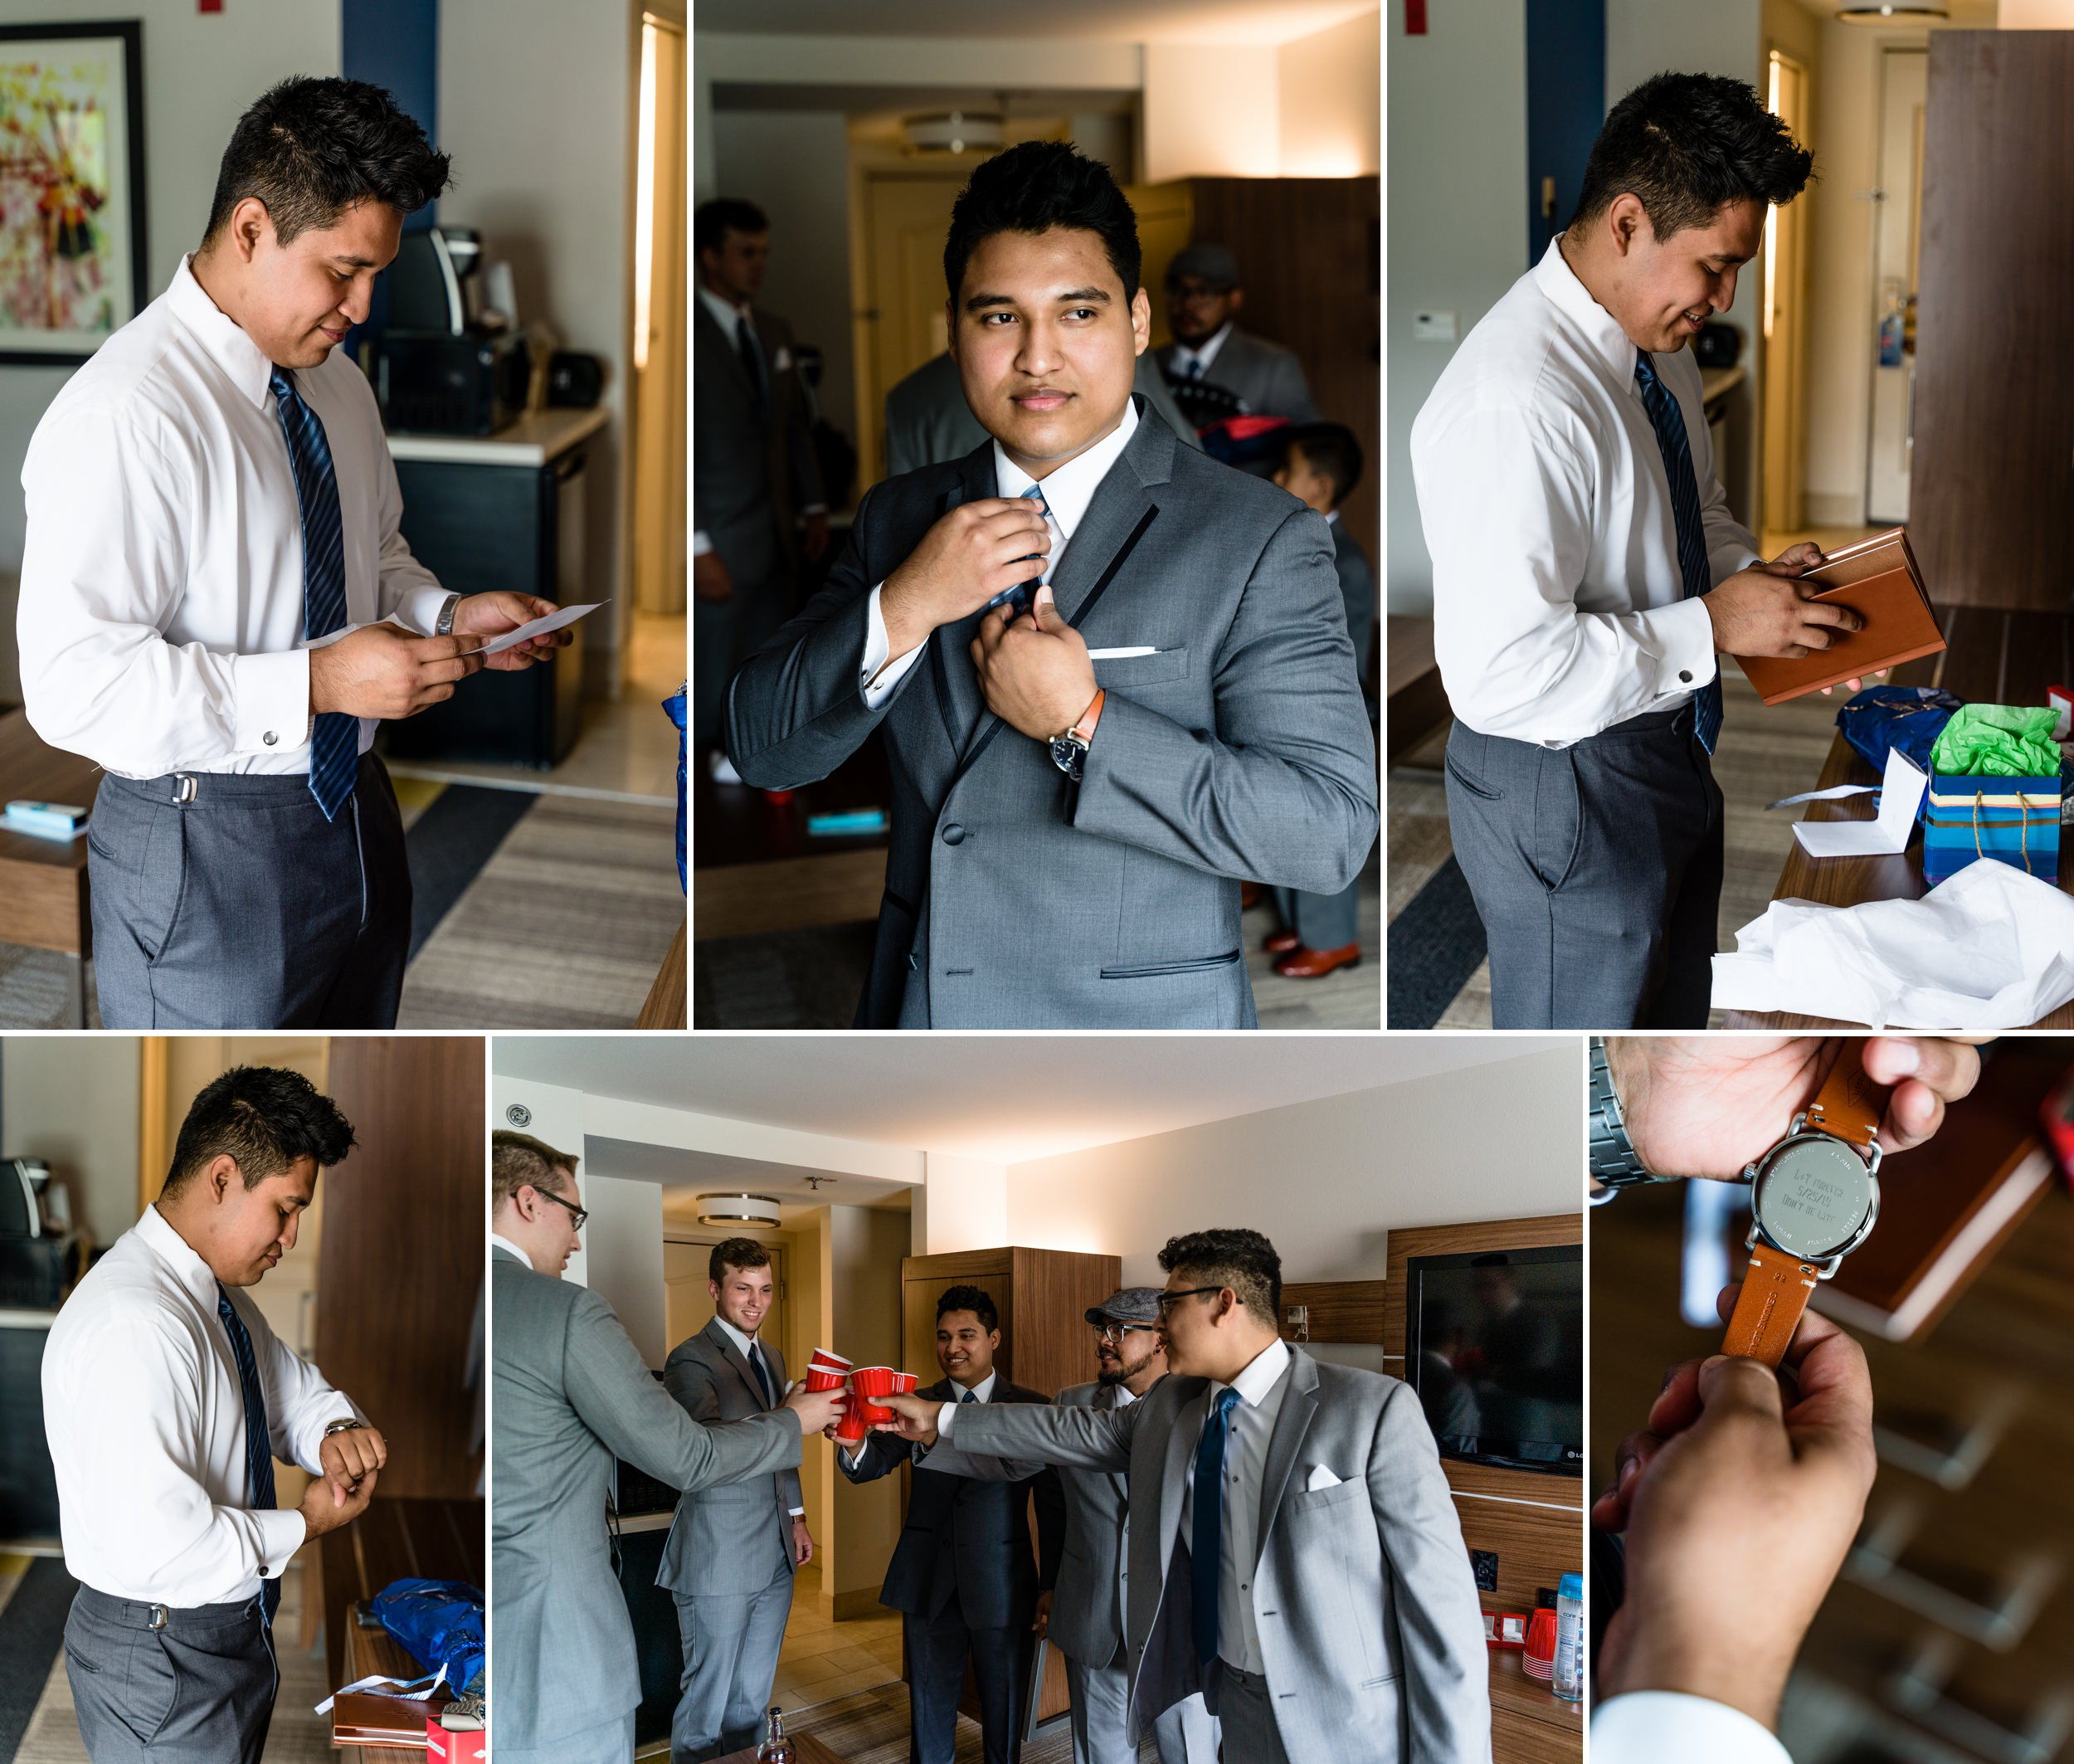 The groom prep before the first look with his bride.